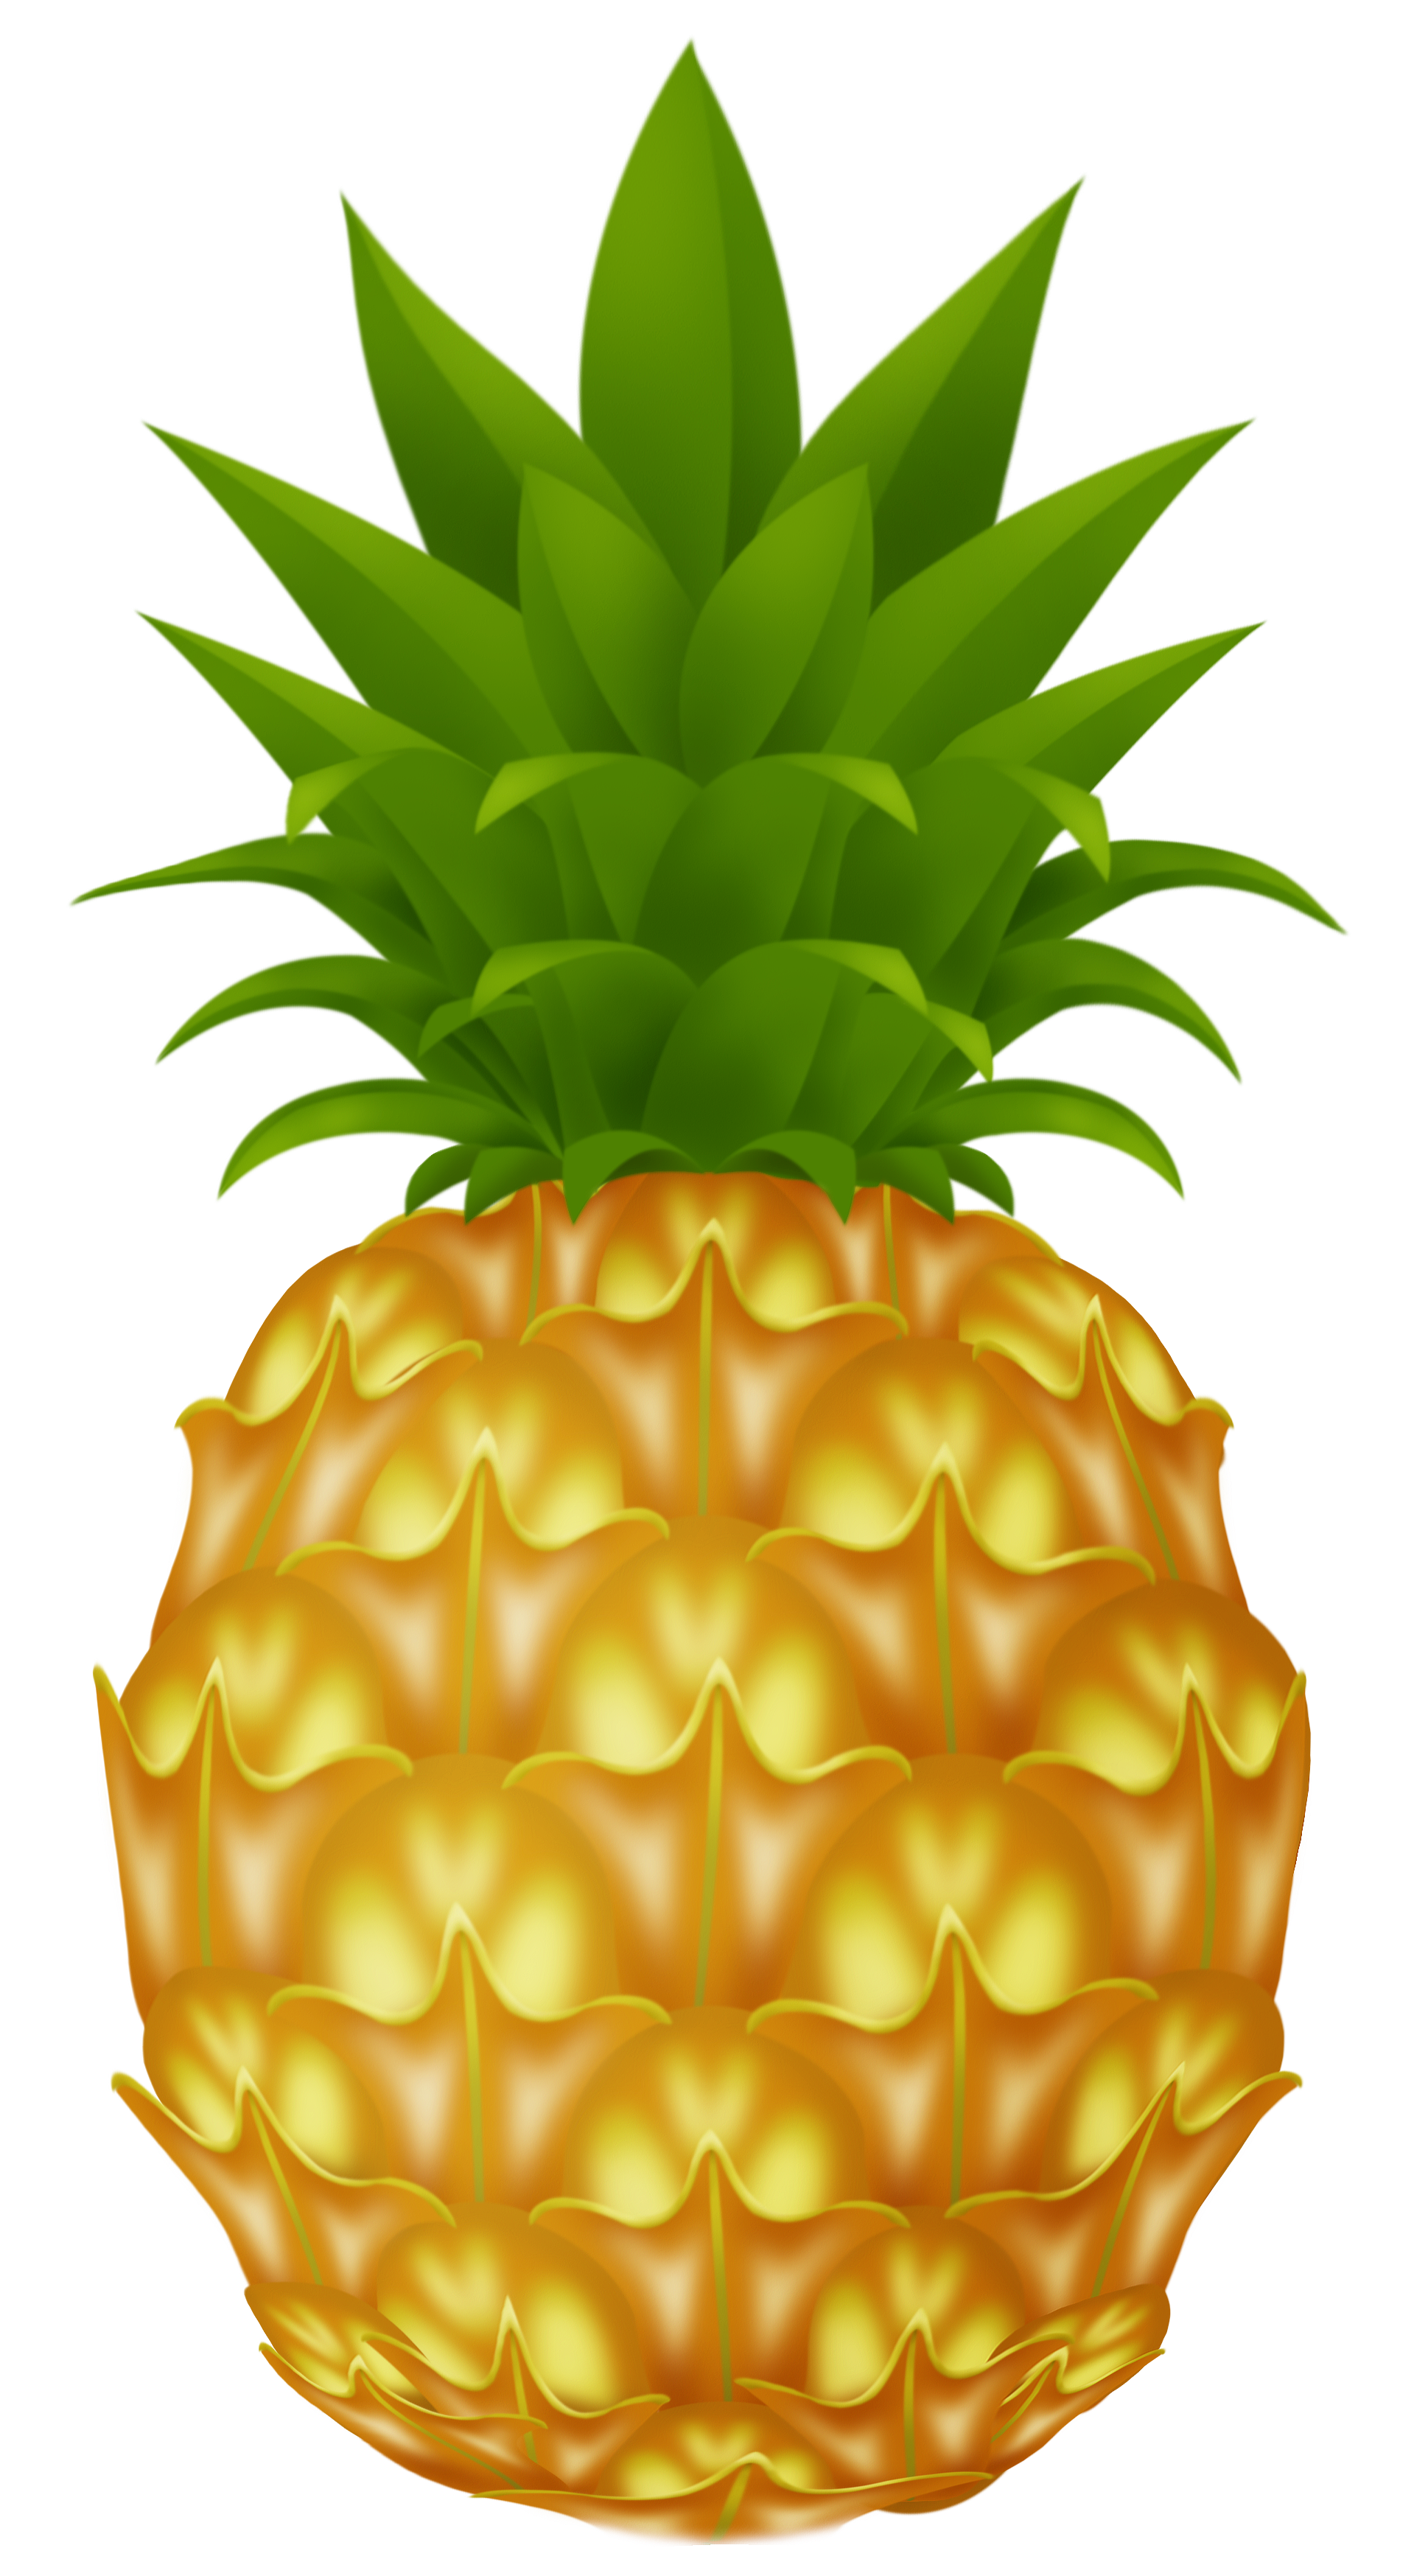 Fruits clipart png. Pineapple picture clip art